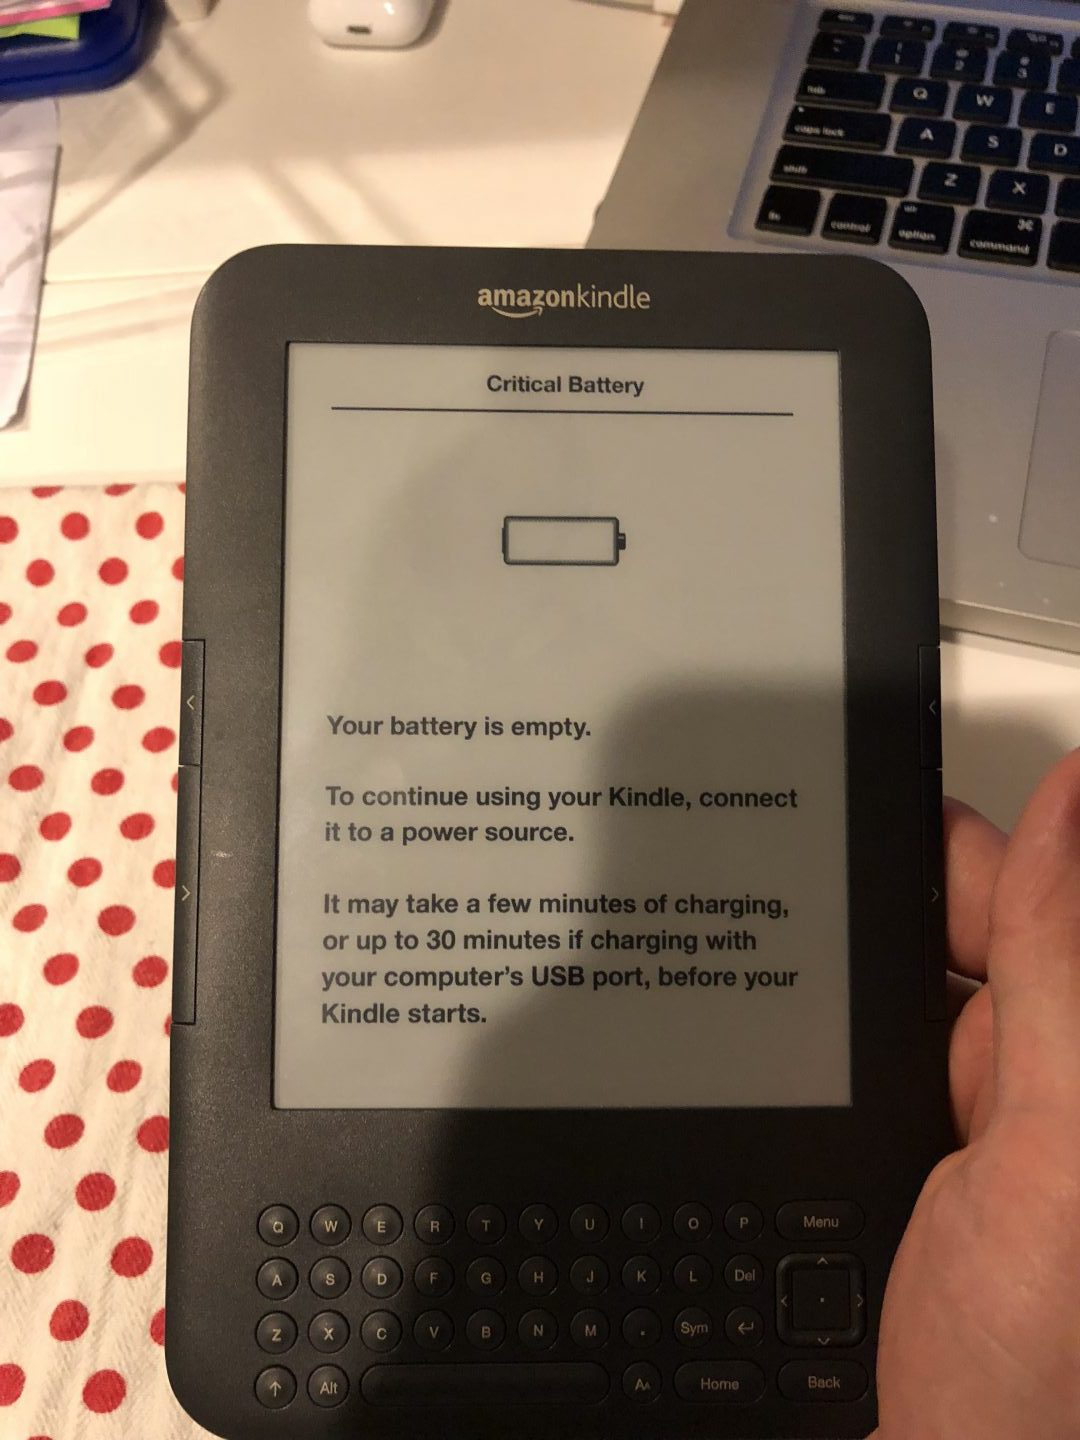 How to fix a Critical Battery error on Kindle Keyboard devices | OG